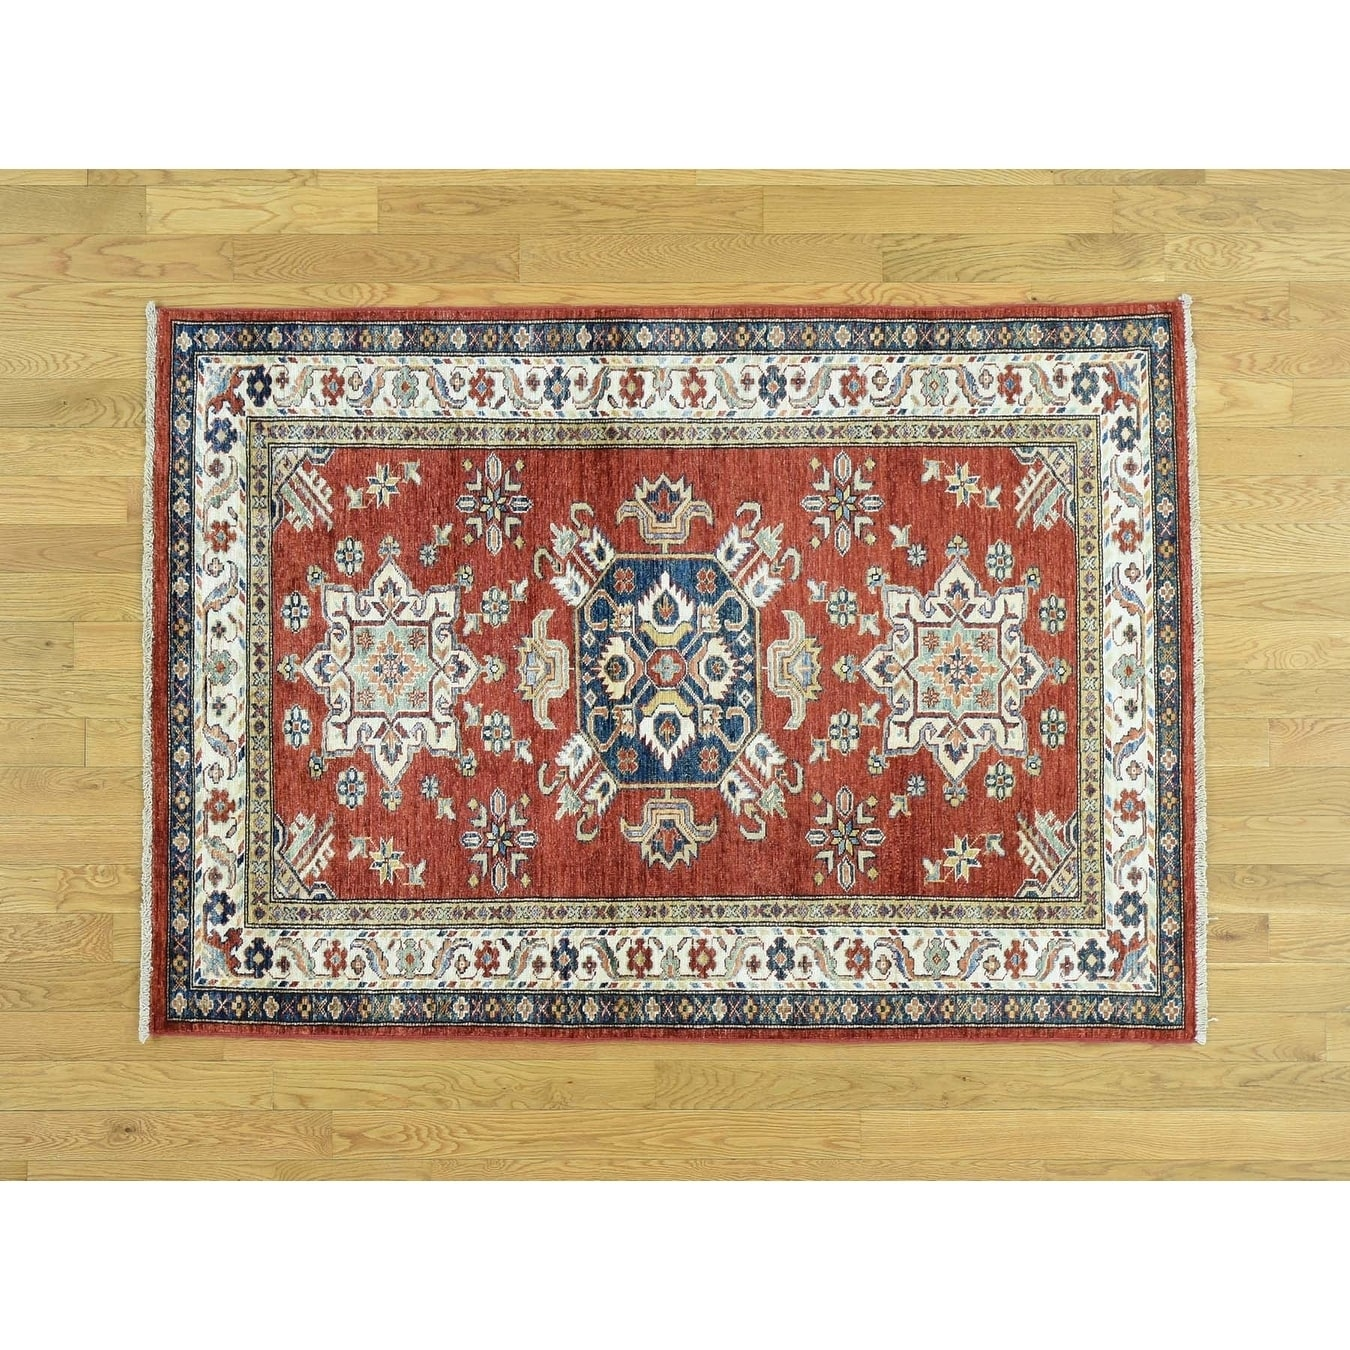 Online Shopping Bedding Furniture Electronics Jewelry Clothing More Colorful Rugs Oriental Rug Rugs